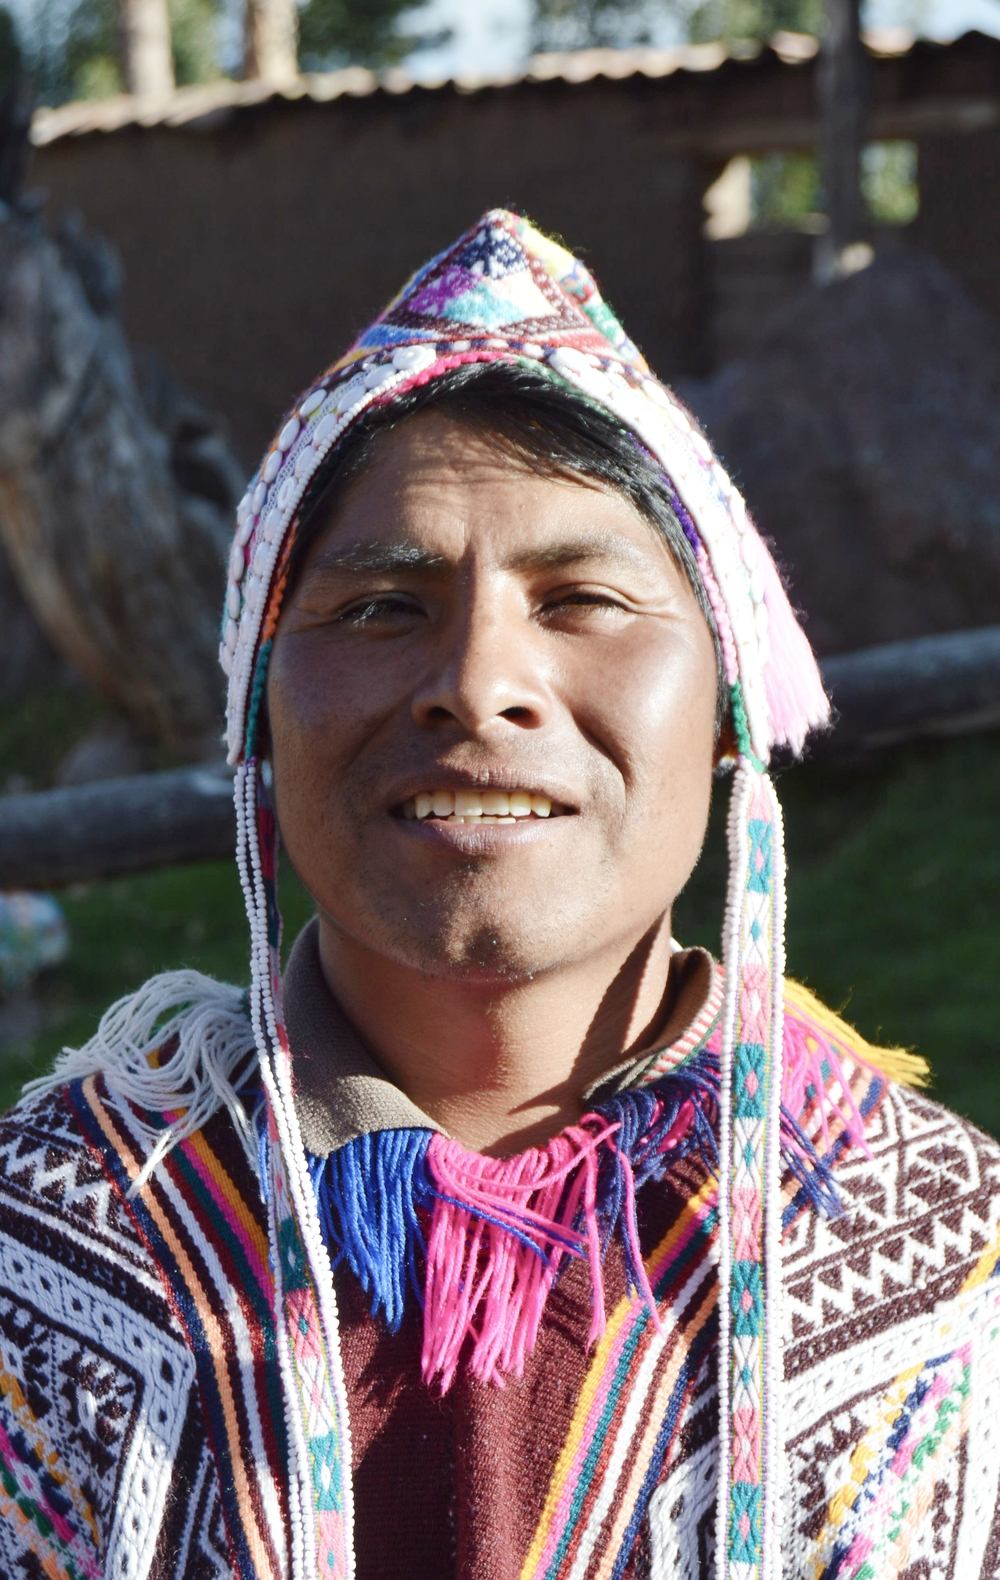 Ceferino Sicos Macce, Farmer, Local Guide, and Logistics Coordinator for CBT Association